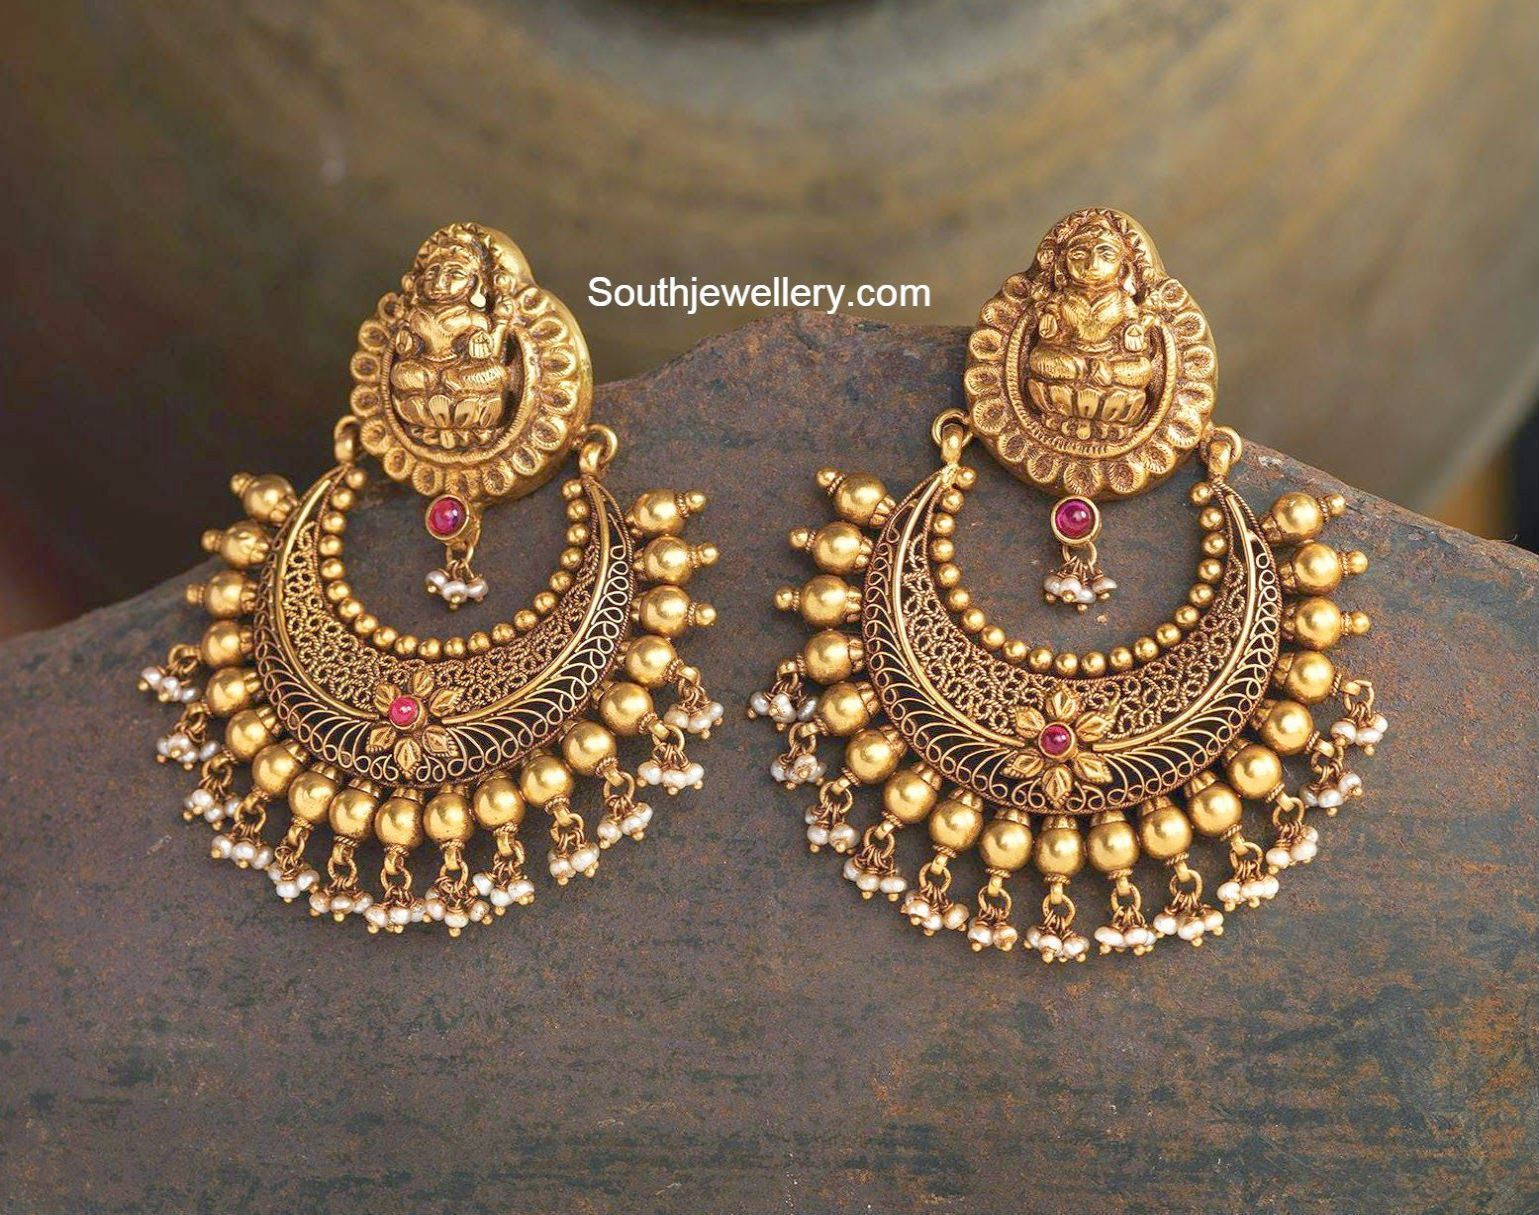 Amazing Antique Indian Jewellery Designs Catalogue Excellent